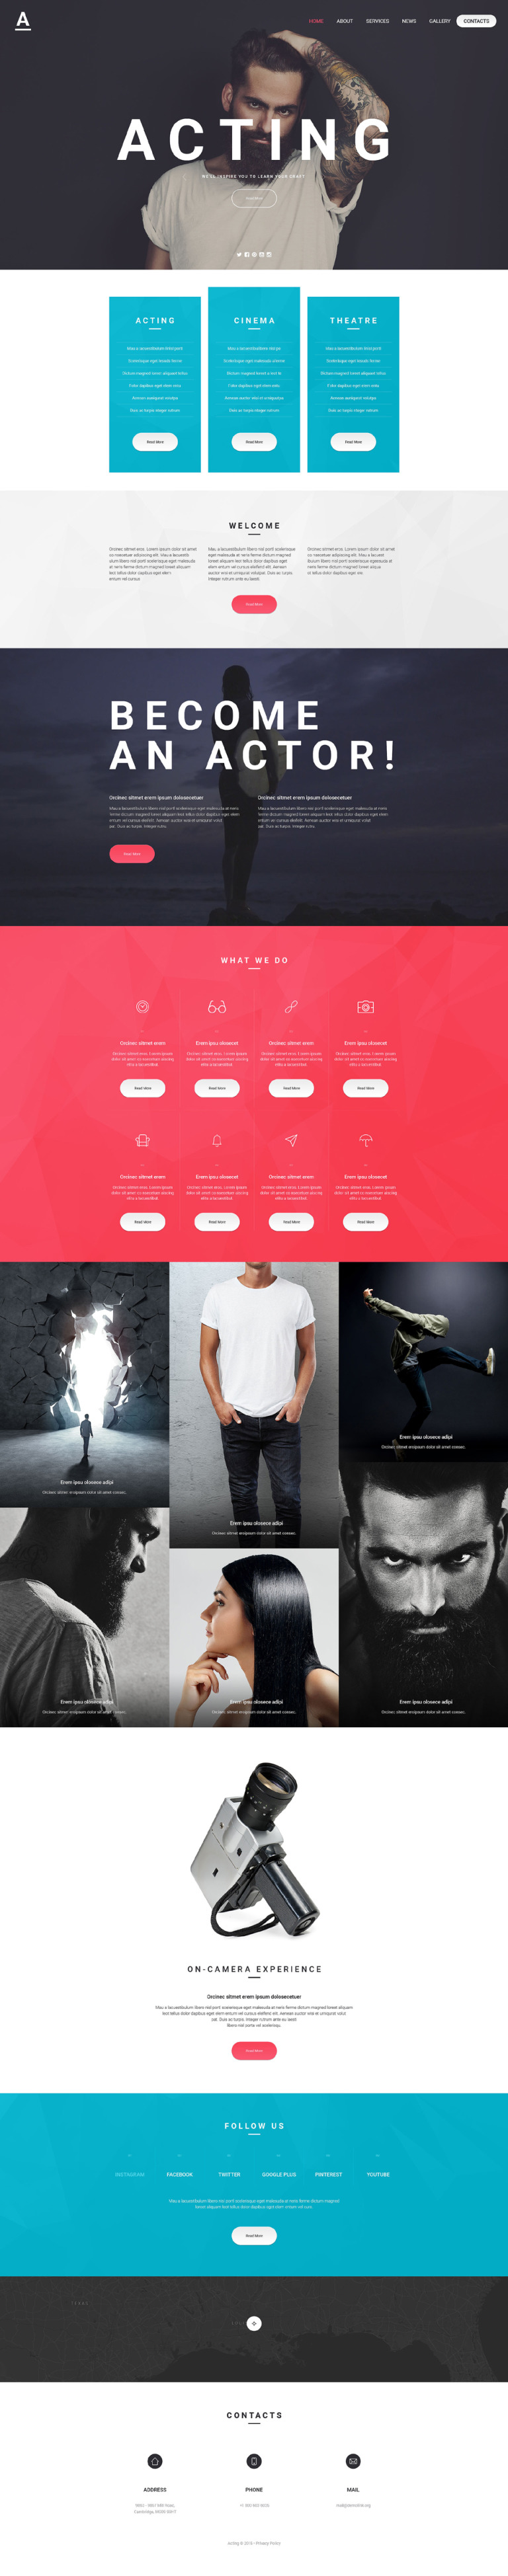 Acting Art Website Template New Screenshots BIG